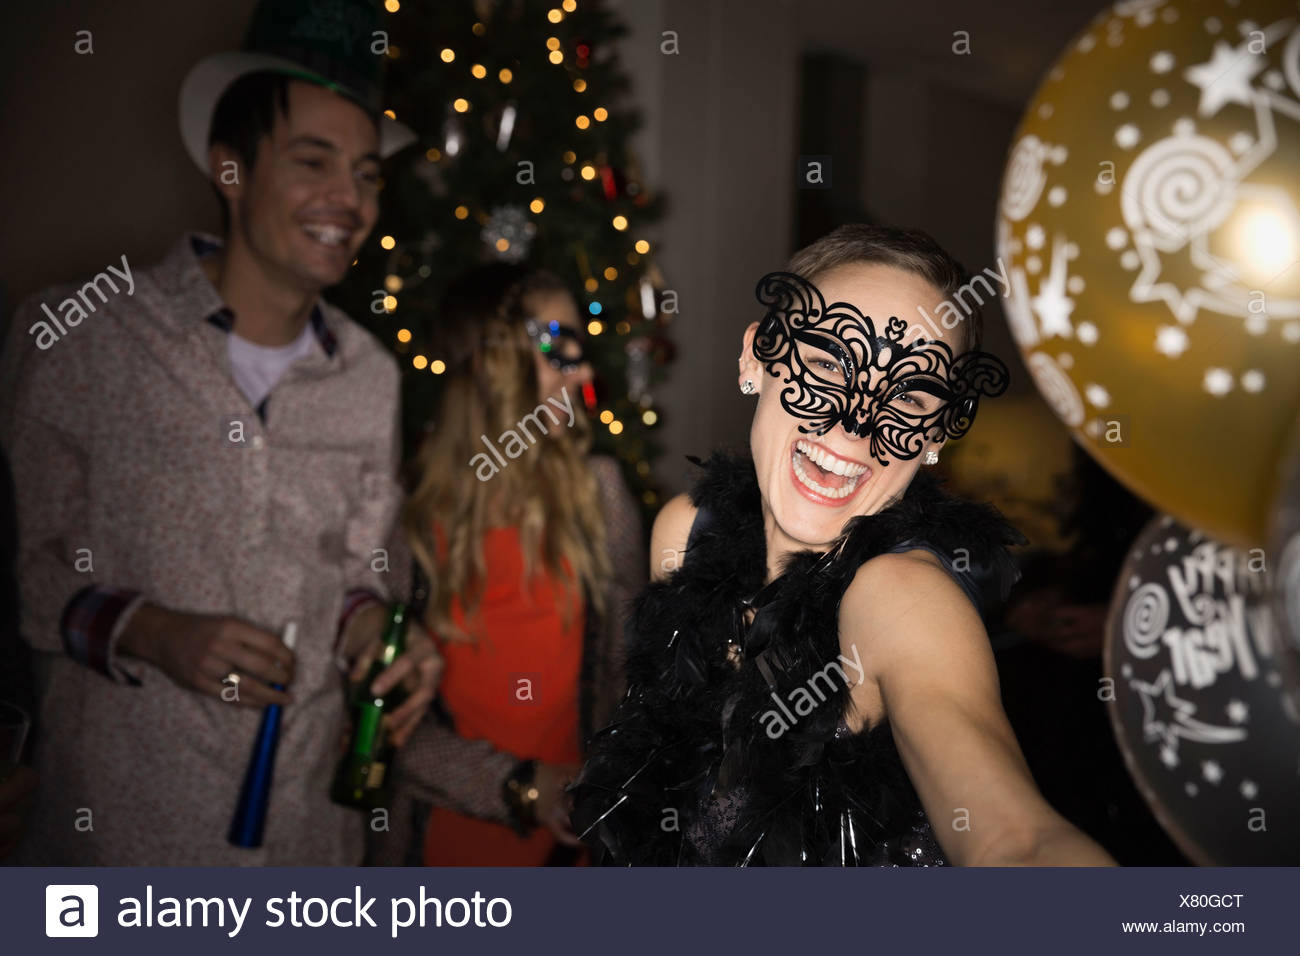 Woman in masquerade mask enjoying New Years Eve party - Stock Image